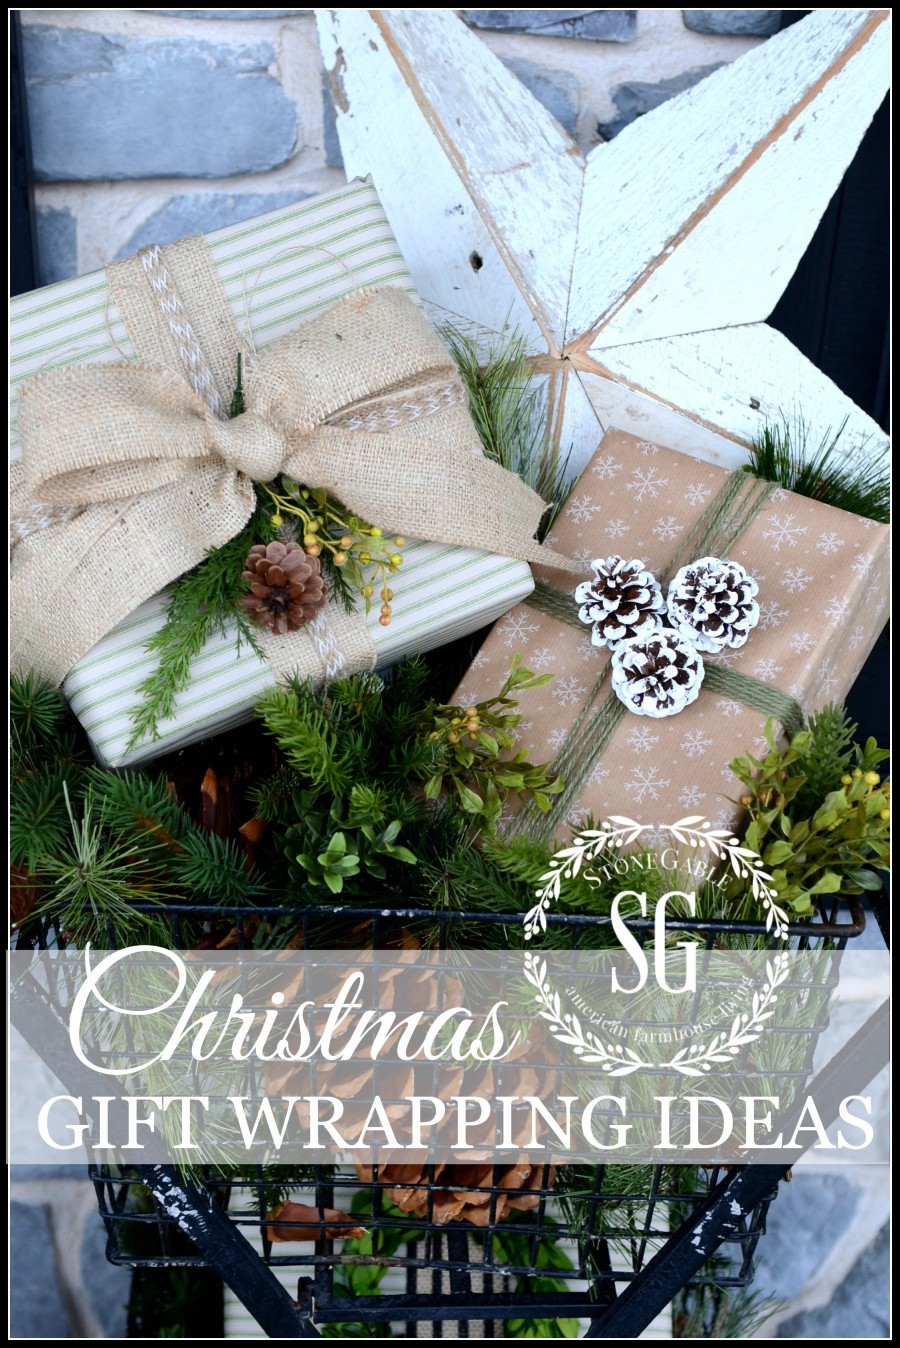 Christmas Gift Wrapping Ideas Stonegable